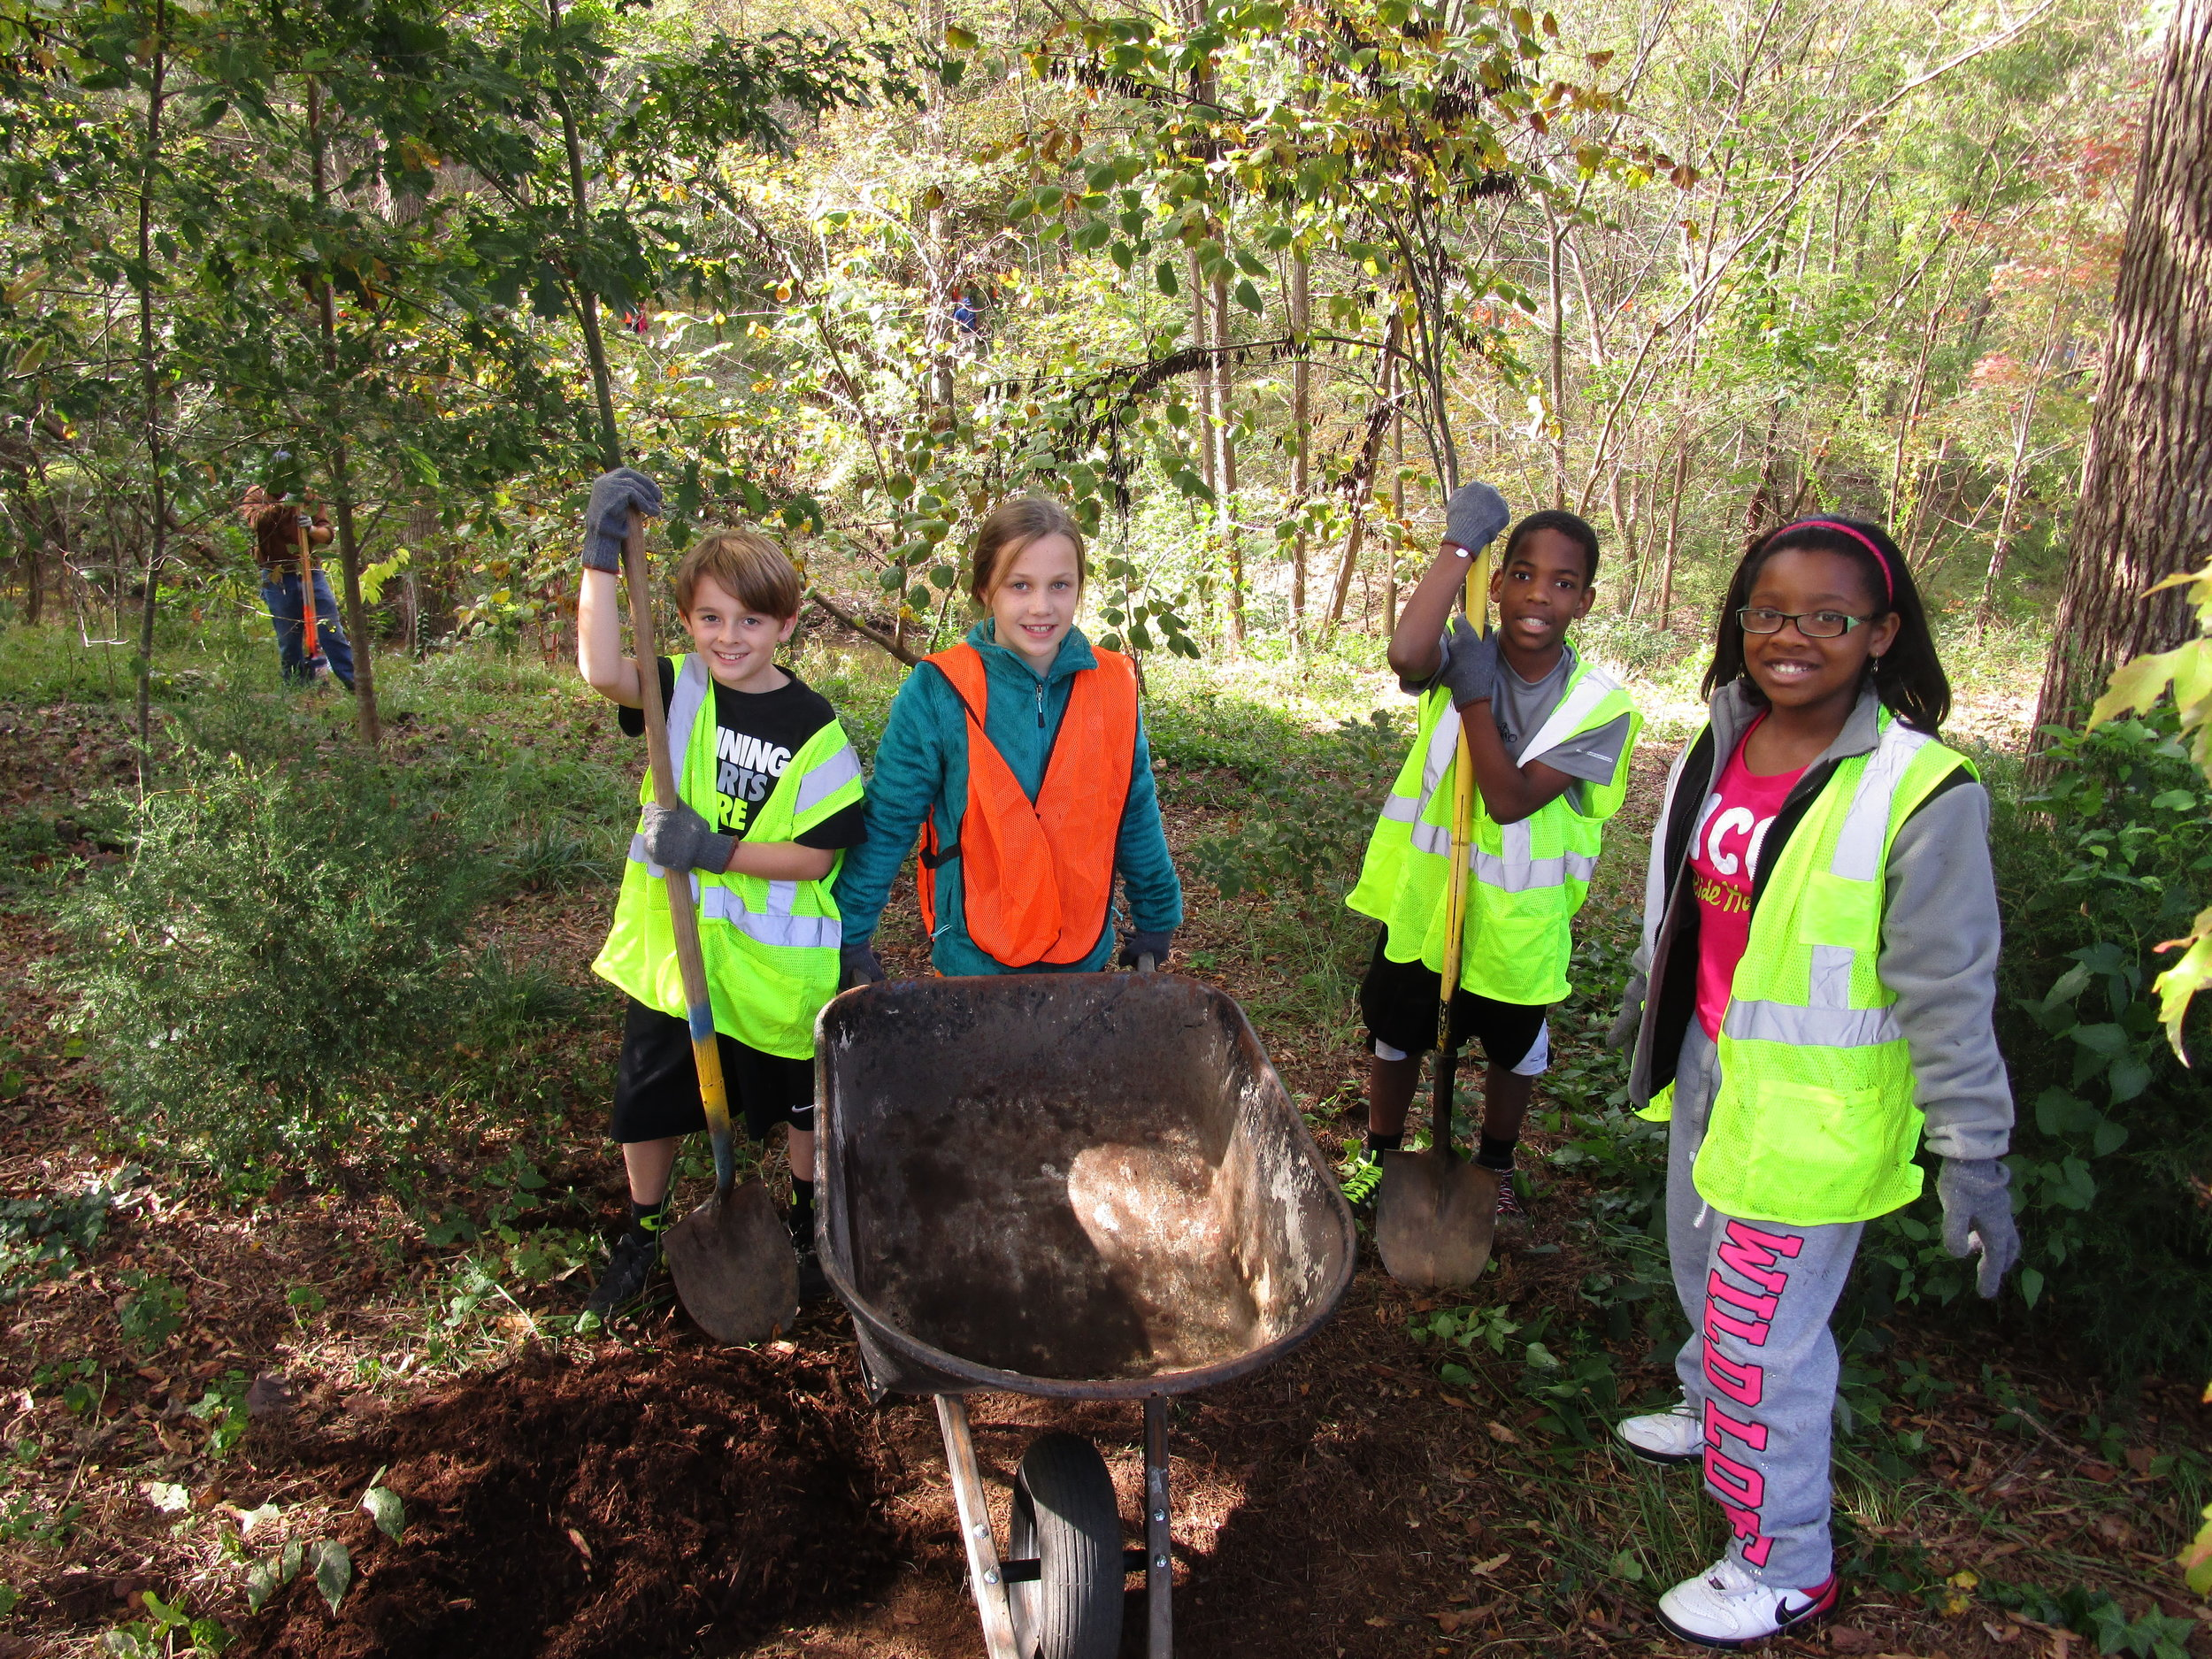 planting trees to restore and preserve the natural environment